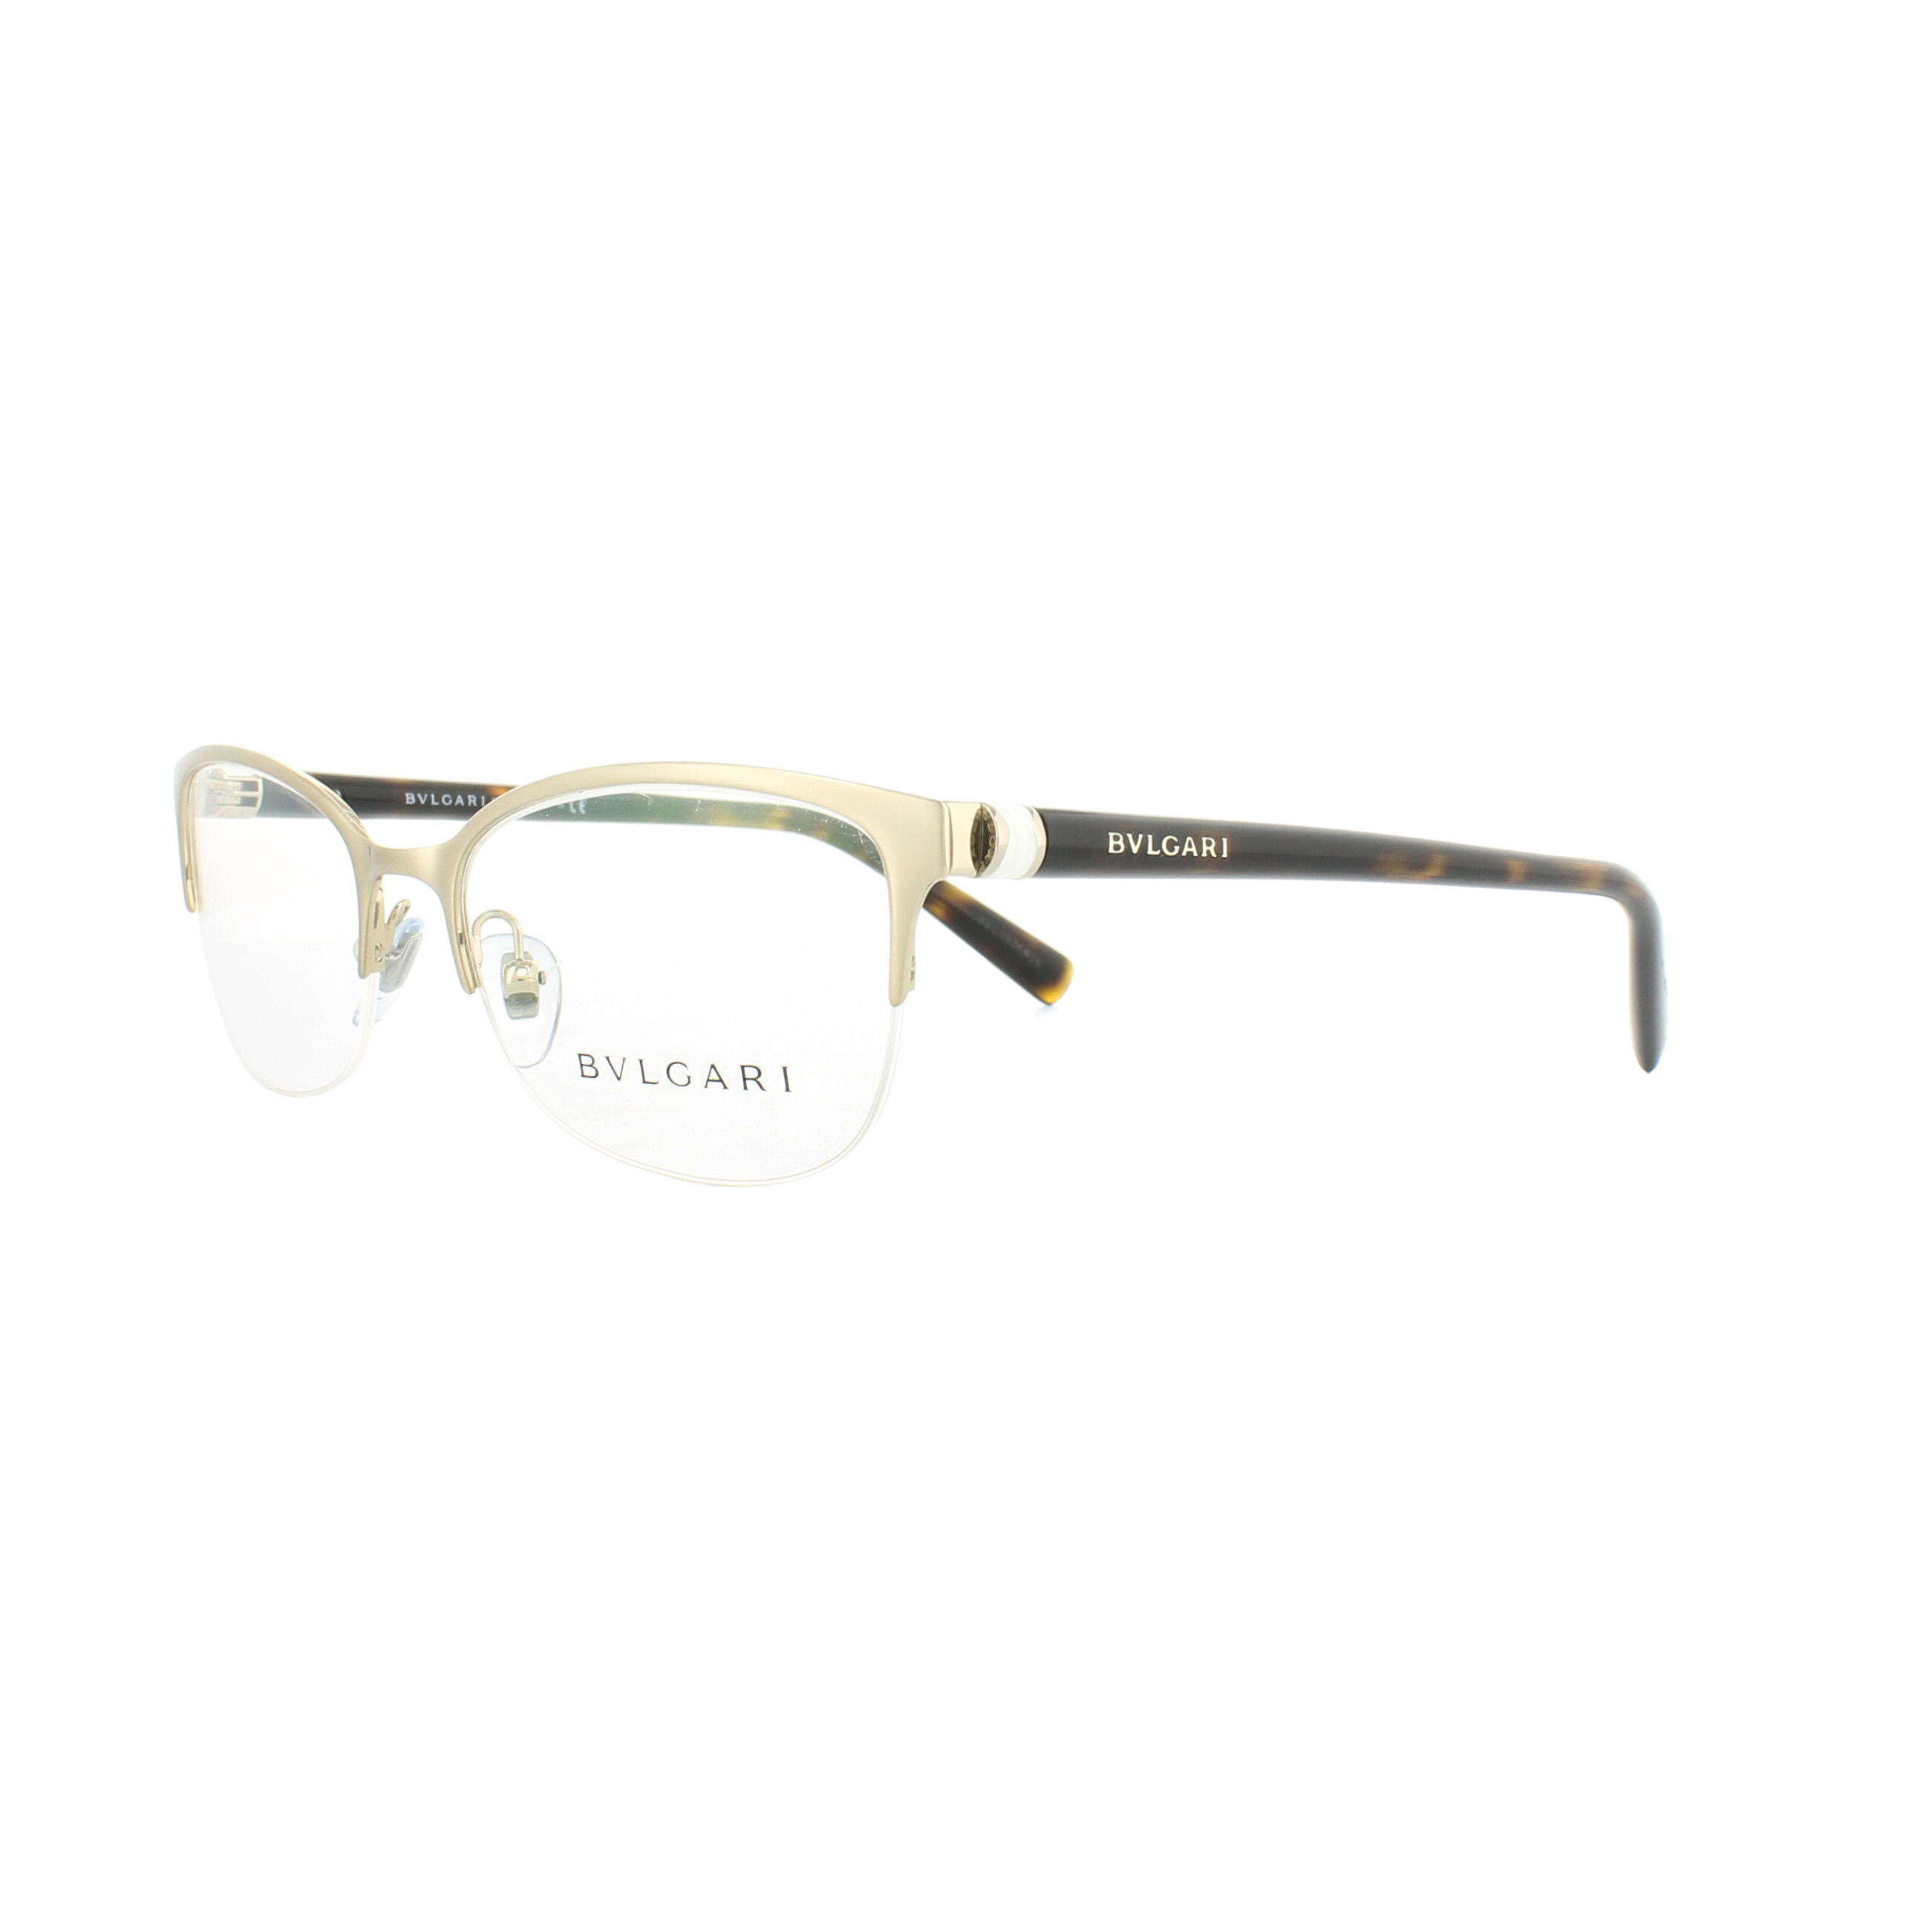 Bvlgari Glasses Frames 2189 2015 Brushed Pale Gold 51mm Womens ...